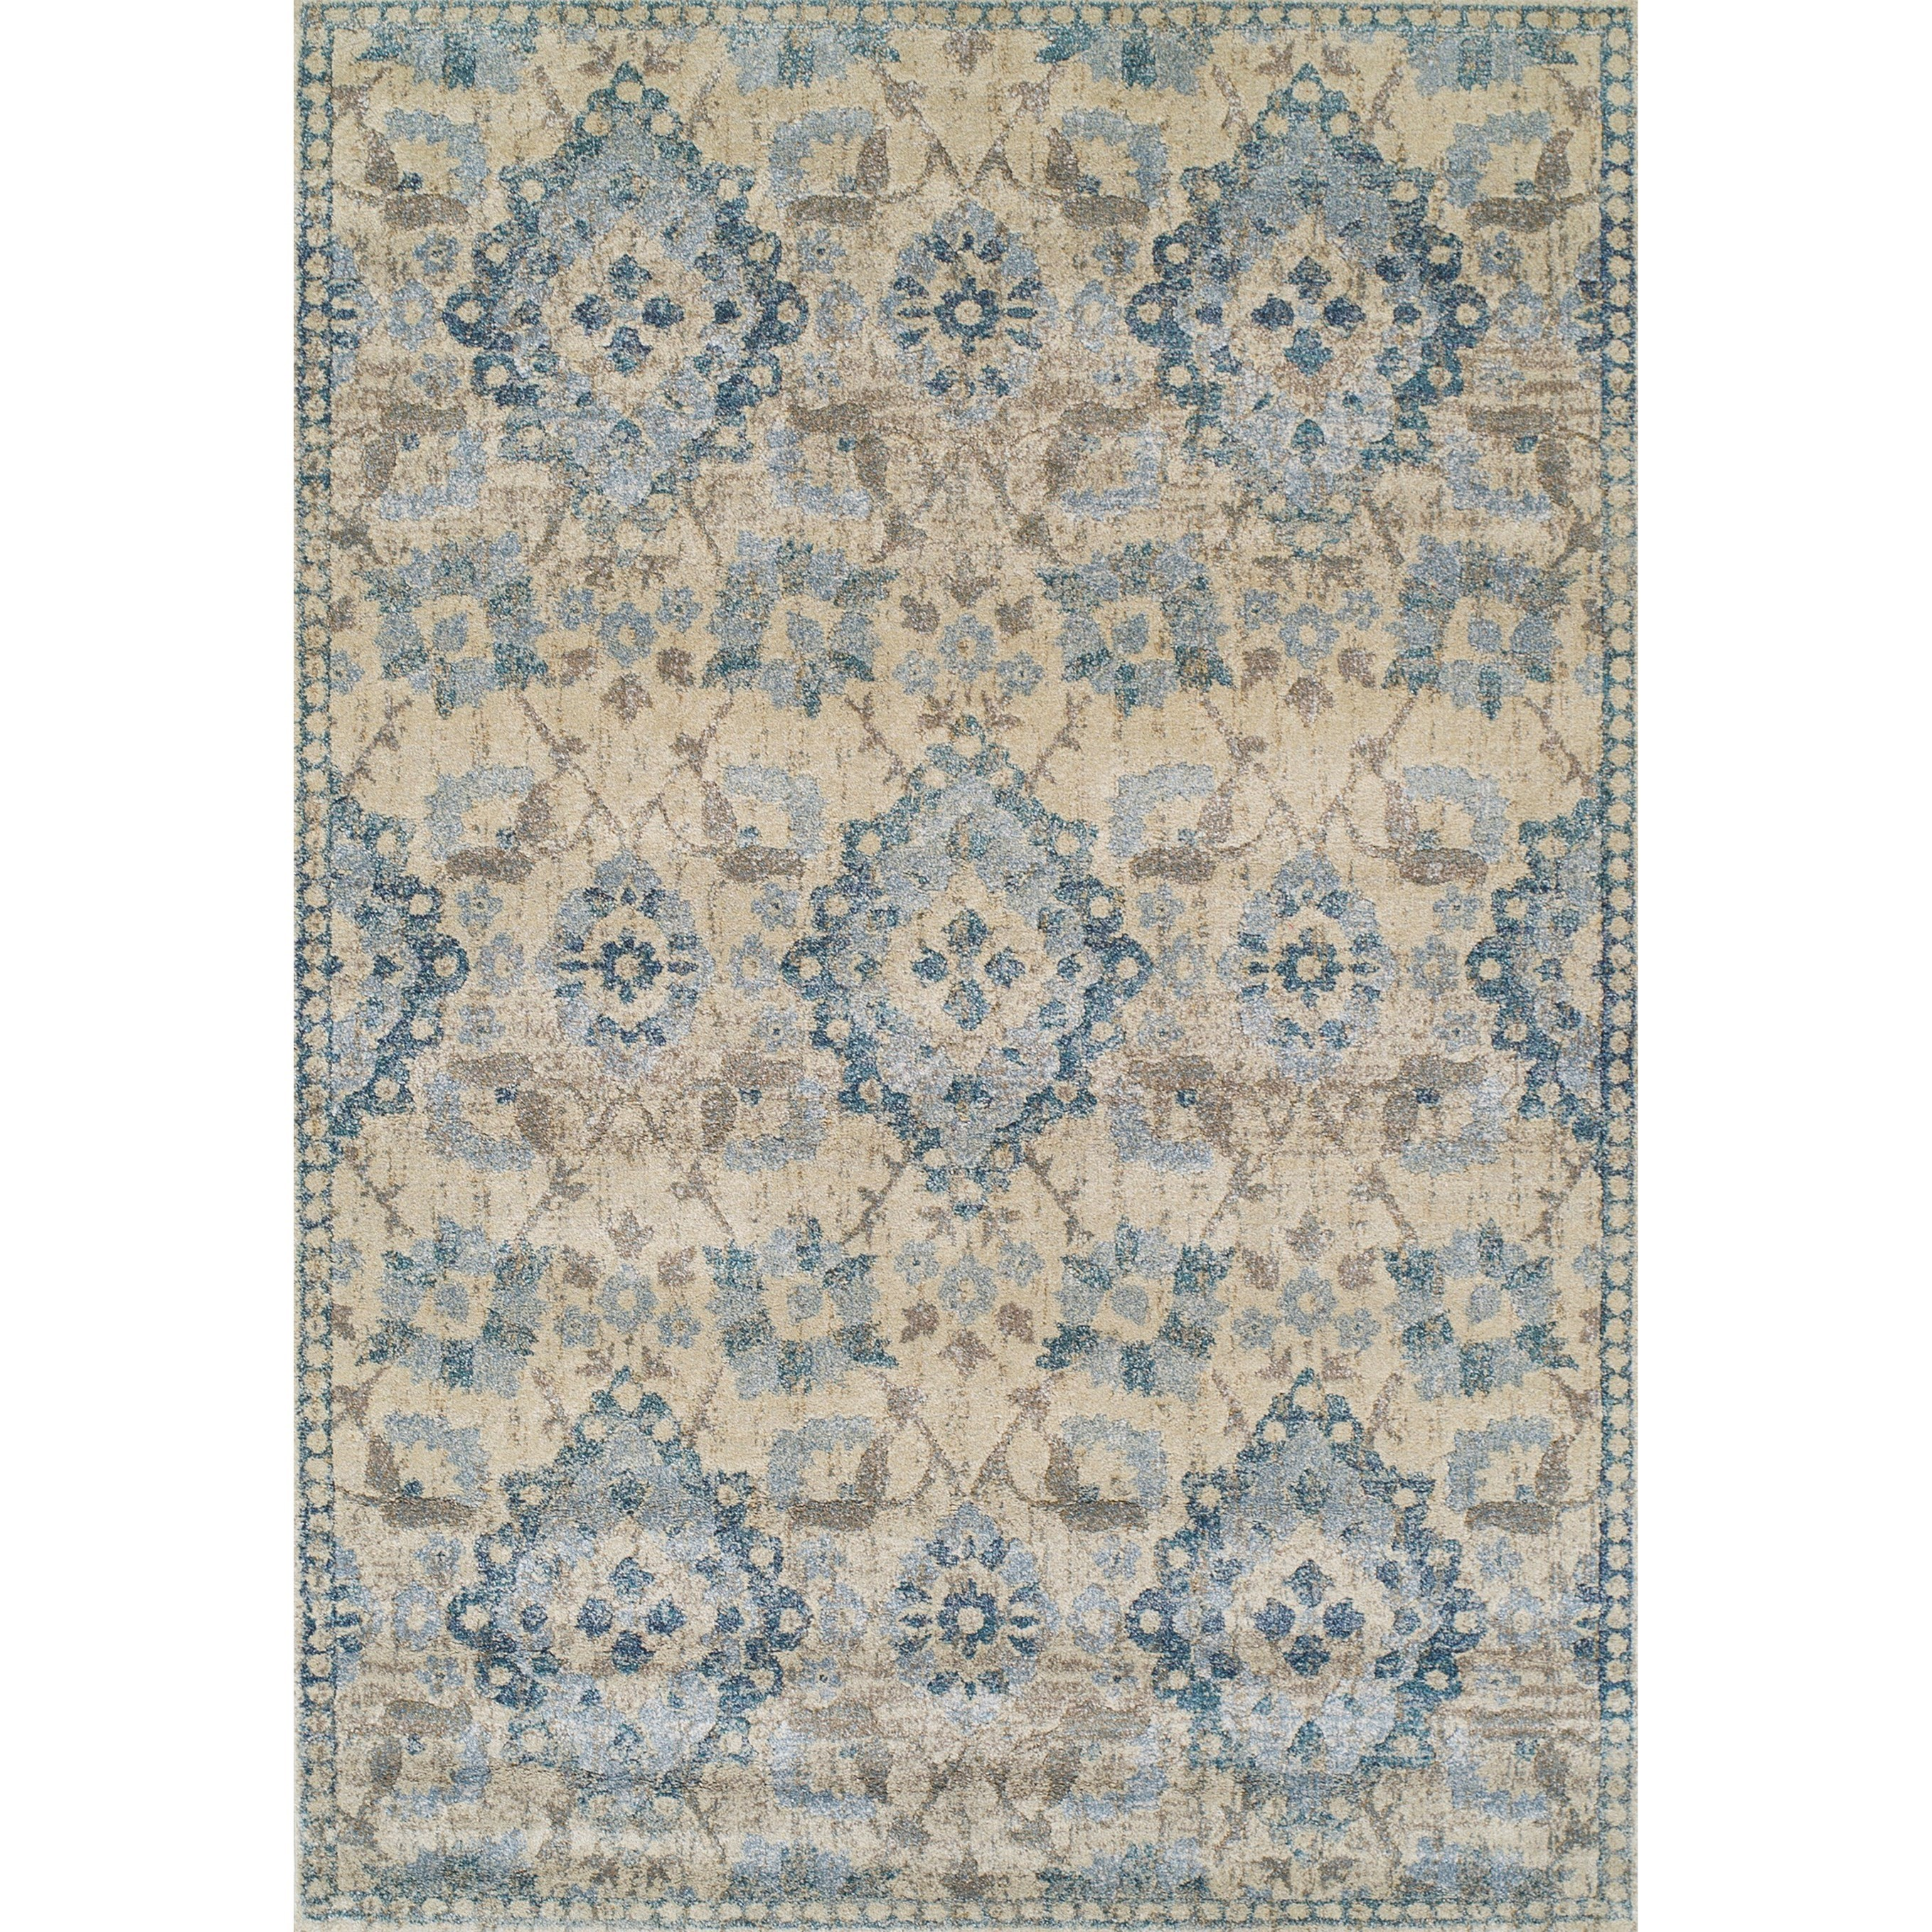 """Antigua Linen 7'10""""X10'7"""" Area Rug by Dalyn at Fashion Furniture"""